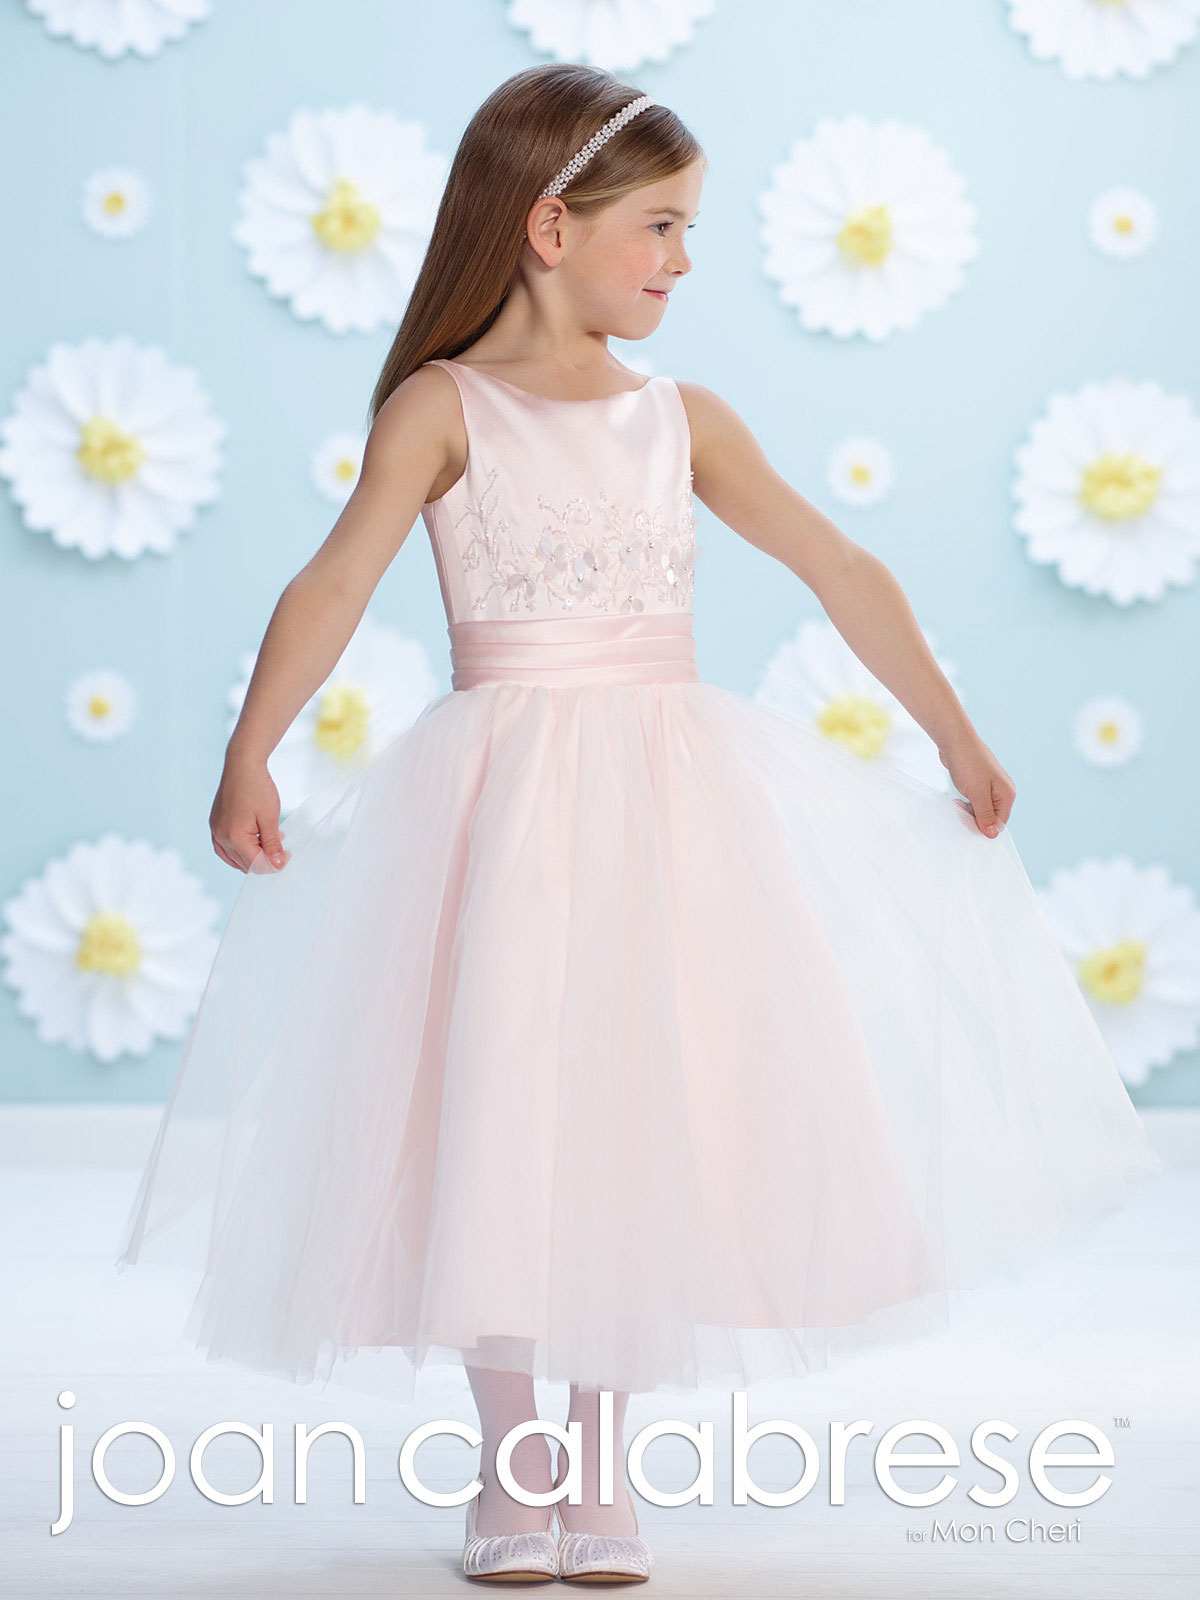 Jc 116393 Joan Calabrese Style 116393 Satin Dress With